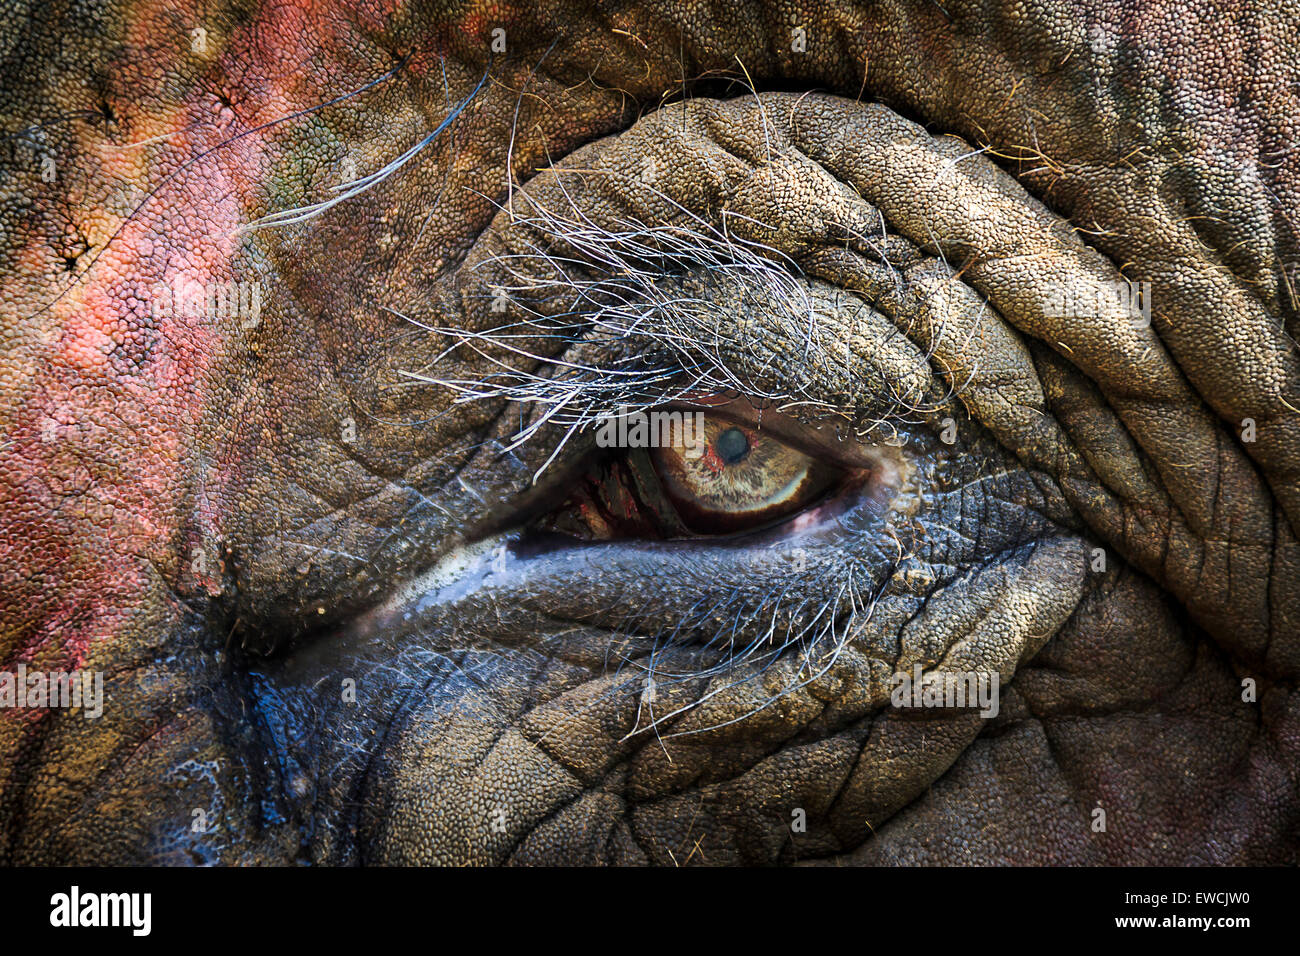 Éléphant d'Asie (Elephas maximus indicus). Close-up de l'œil. L'Inde Photo Stock